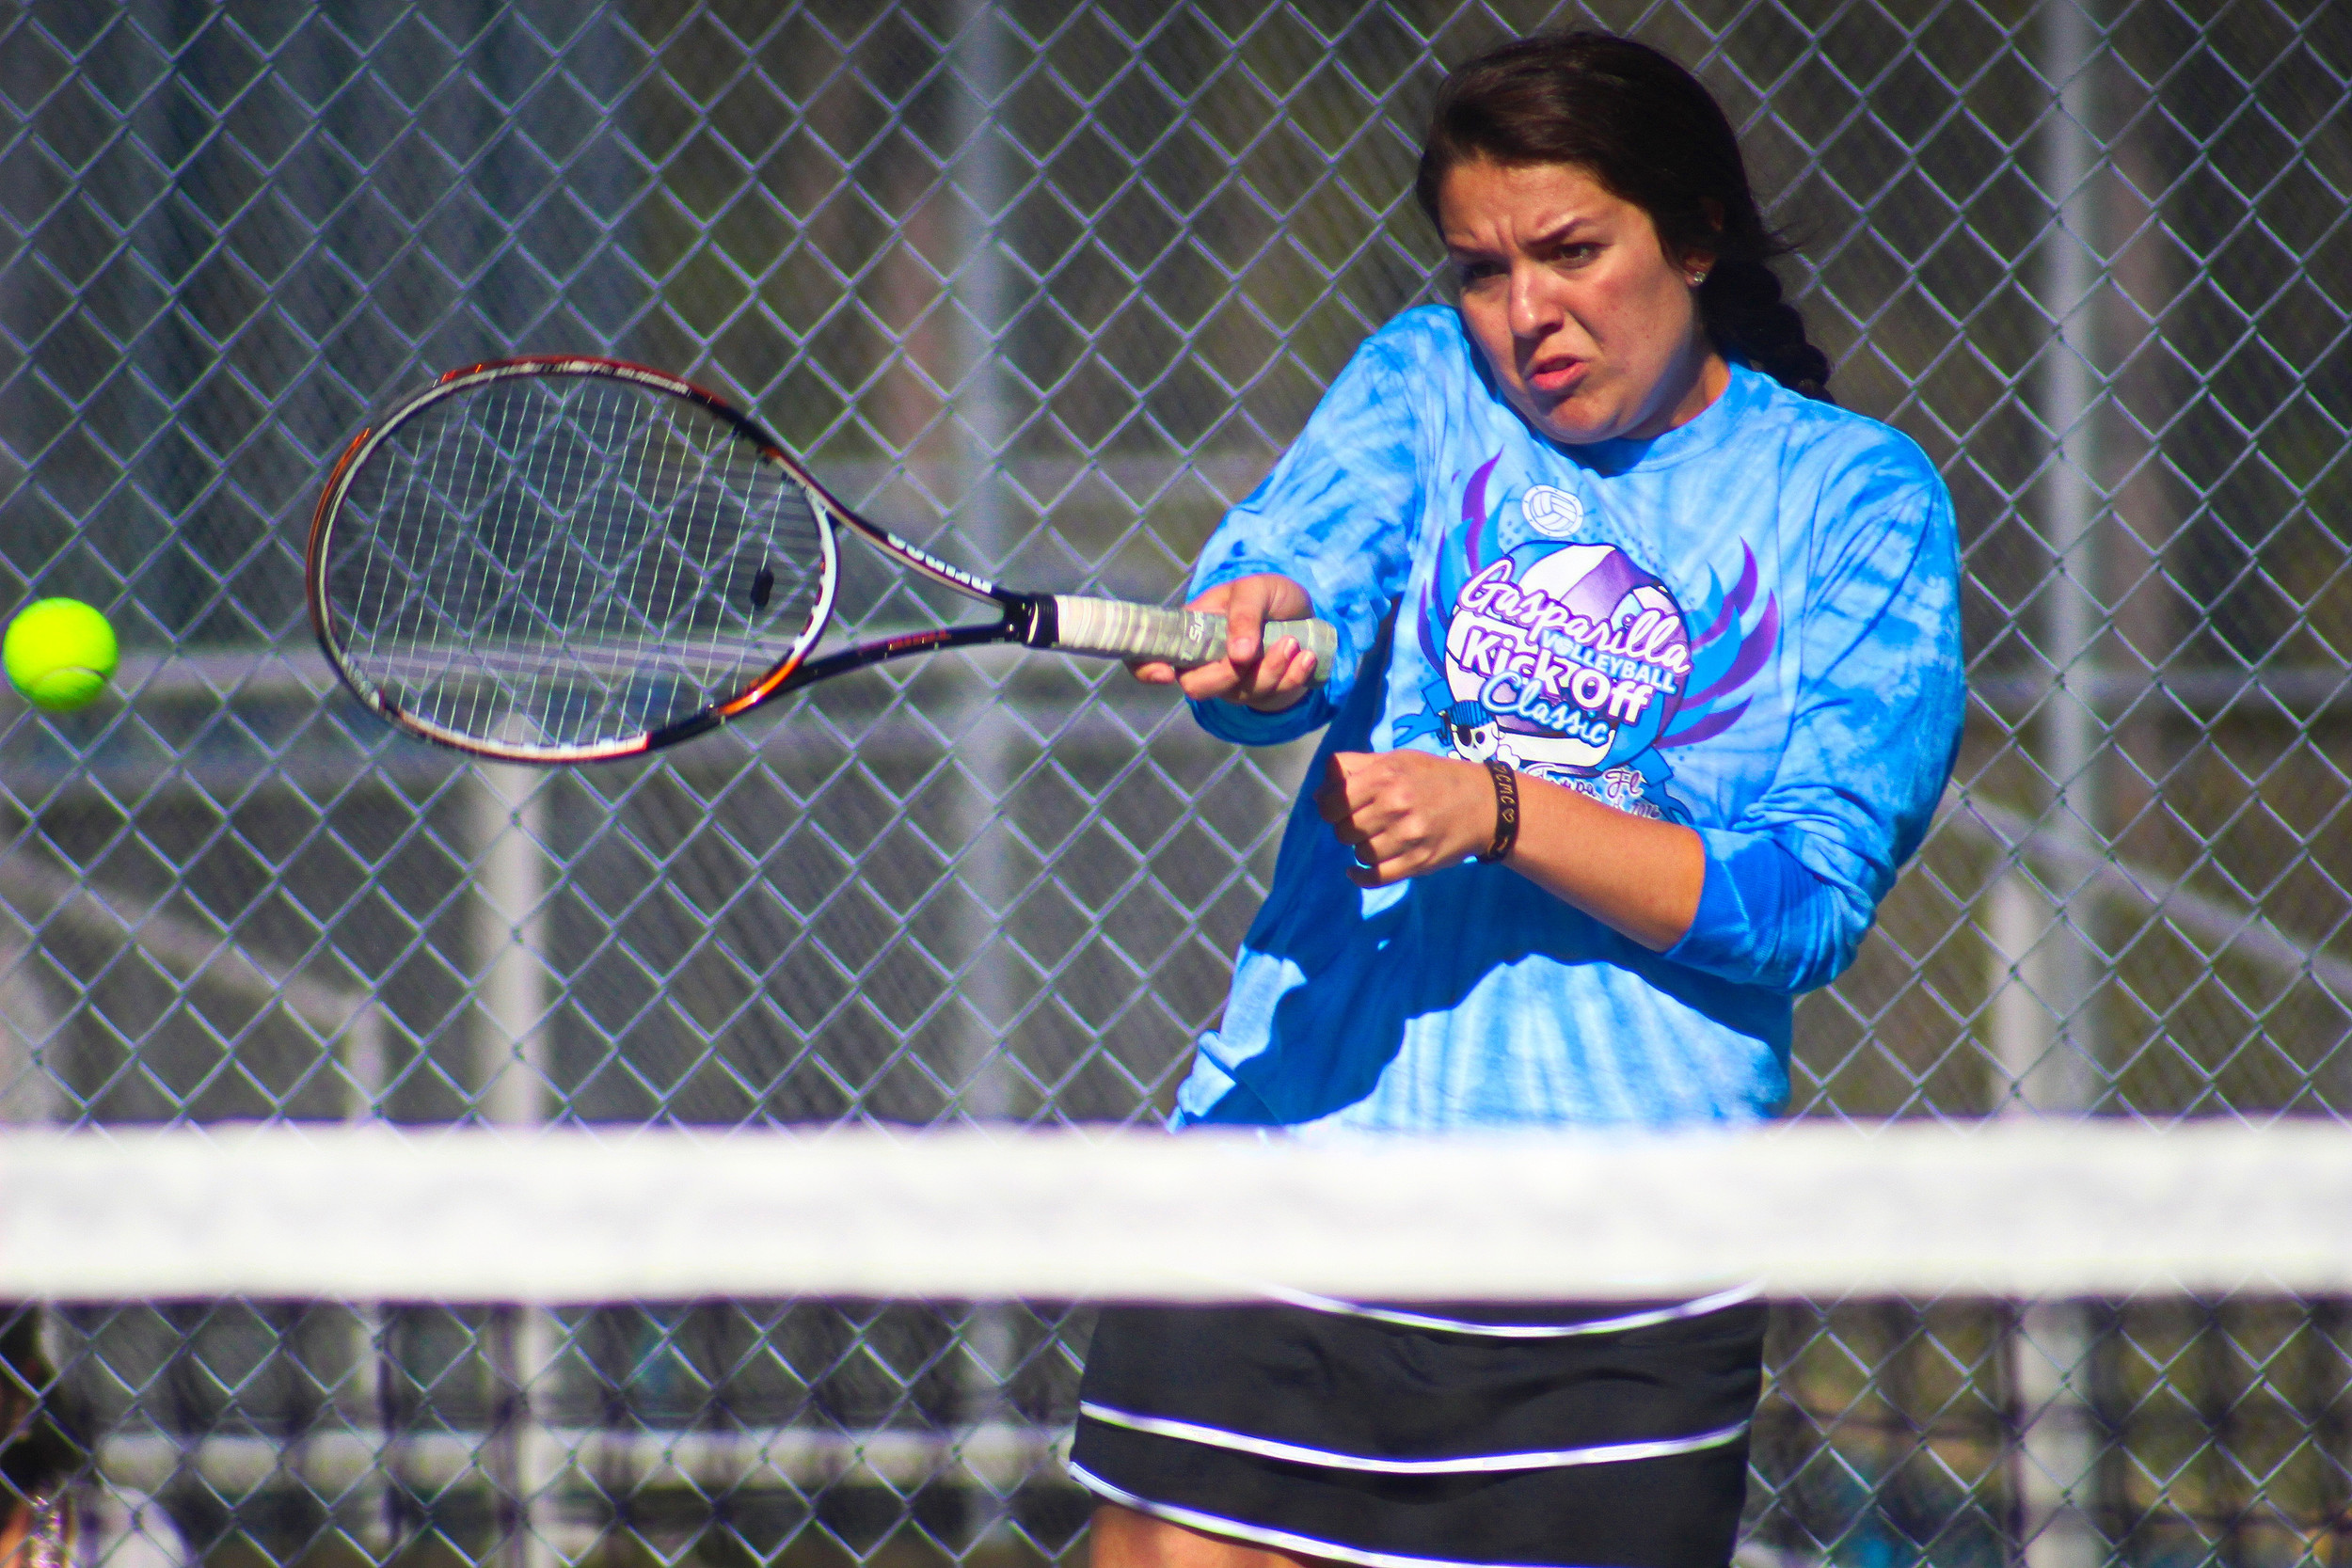 Ridgeview High's Emily Smityh strokes ball back in doubles action against Middleburg.